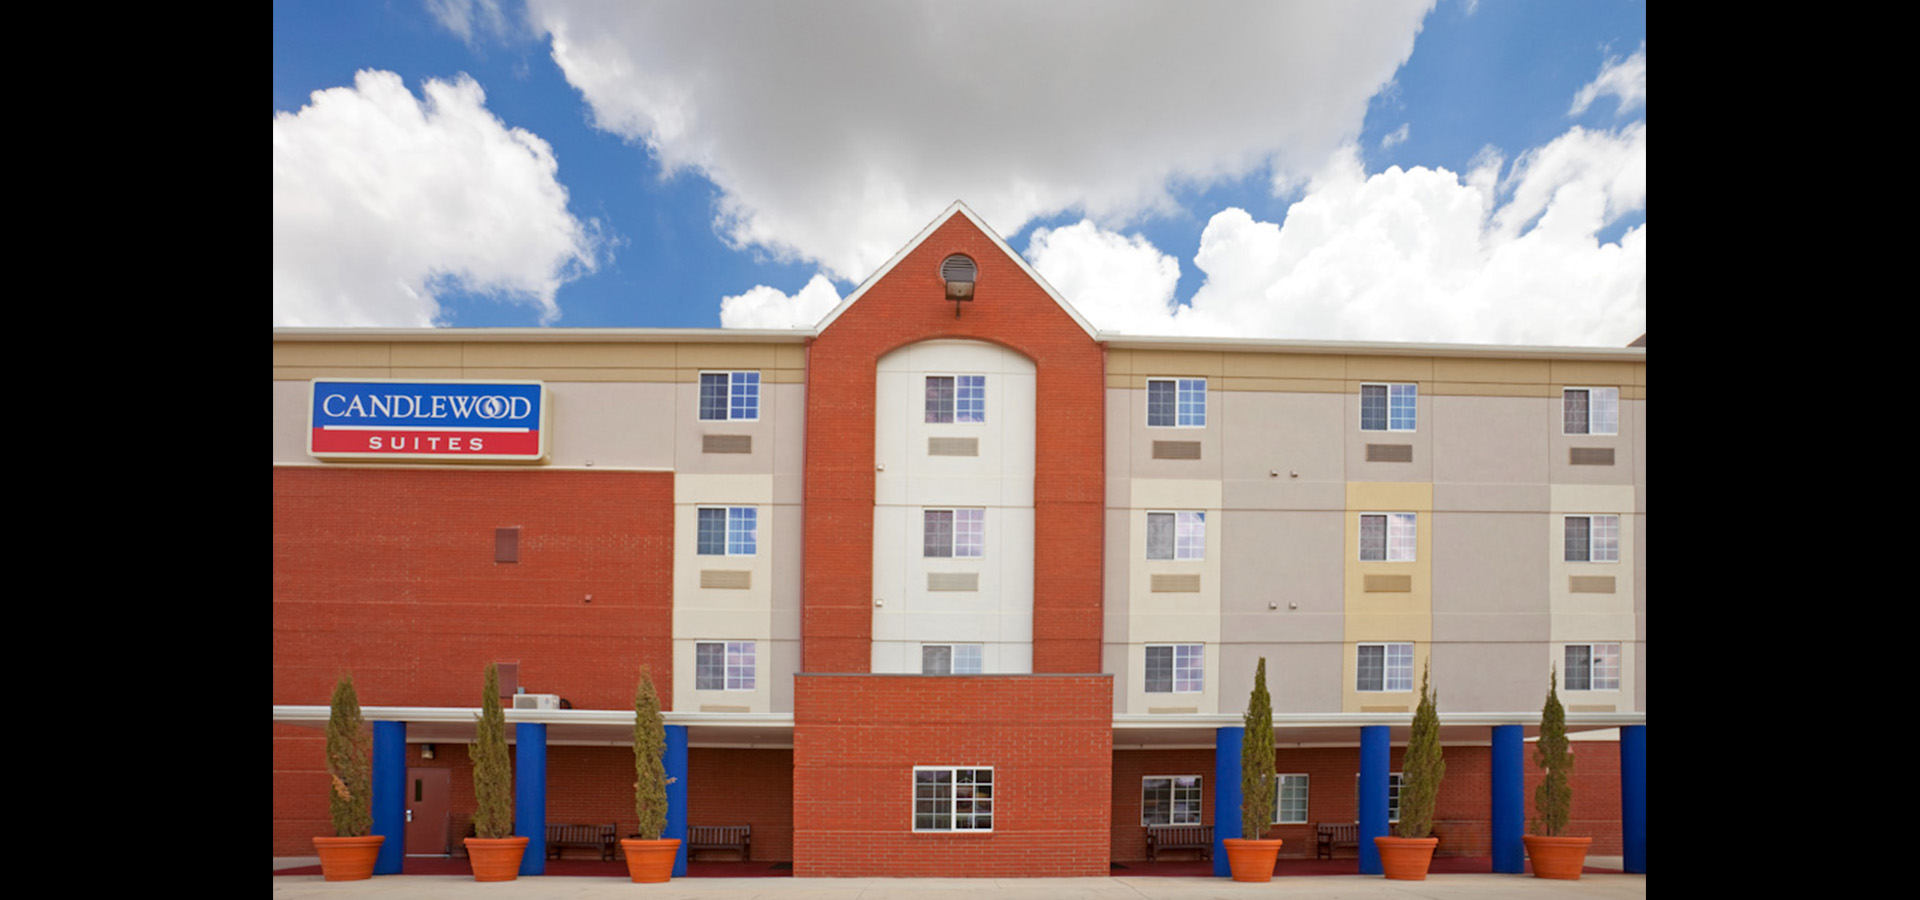 Candlewood Suites DFW South_08